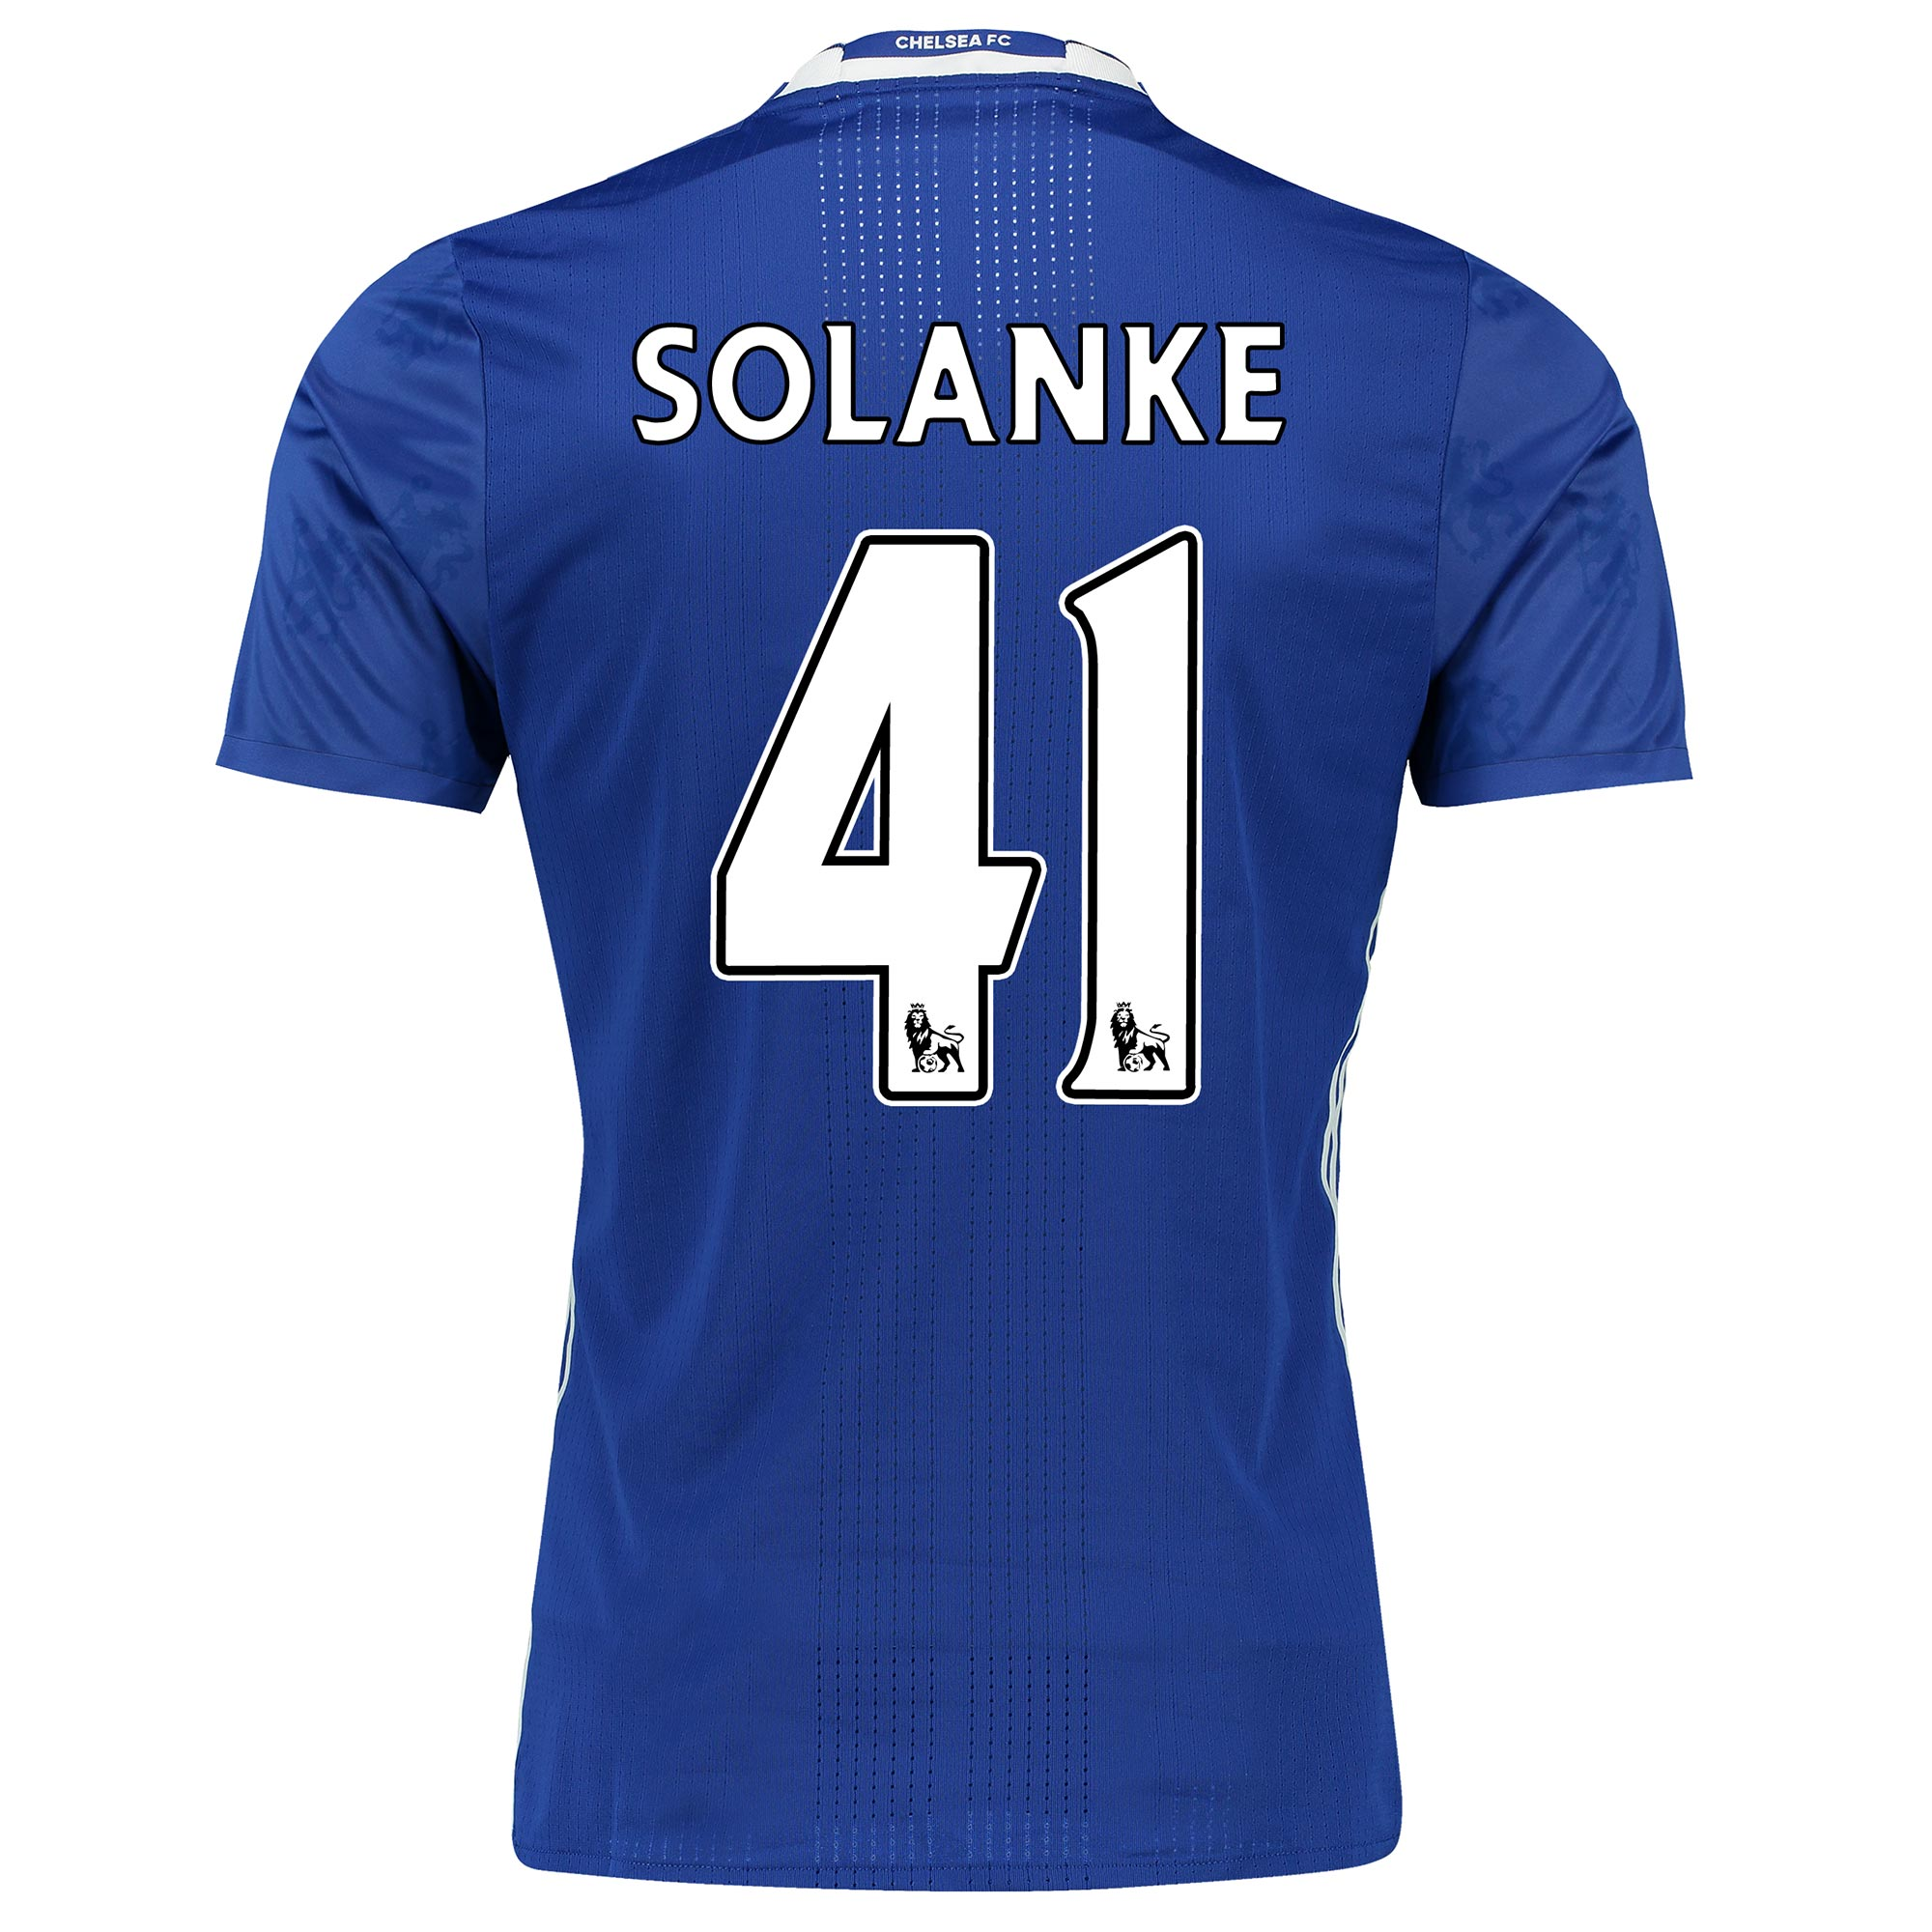 Shop Solanke Printed Shirts